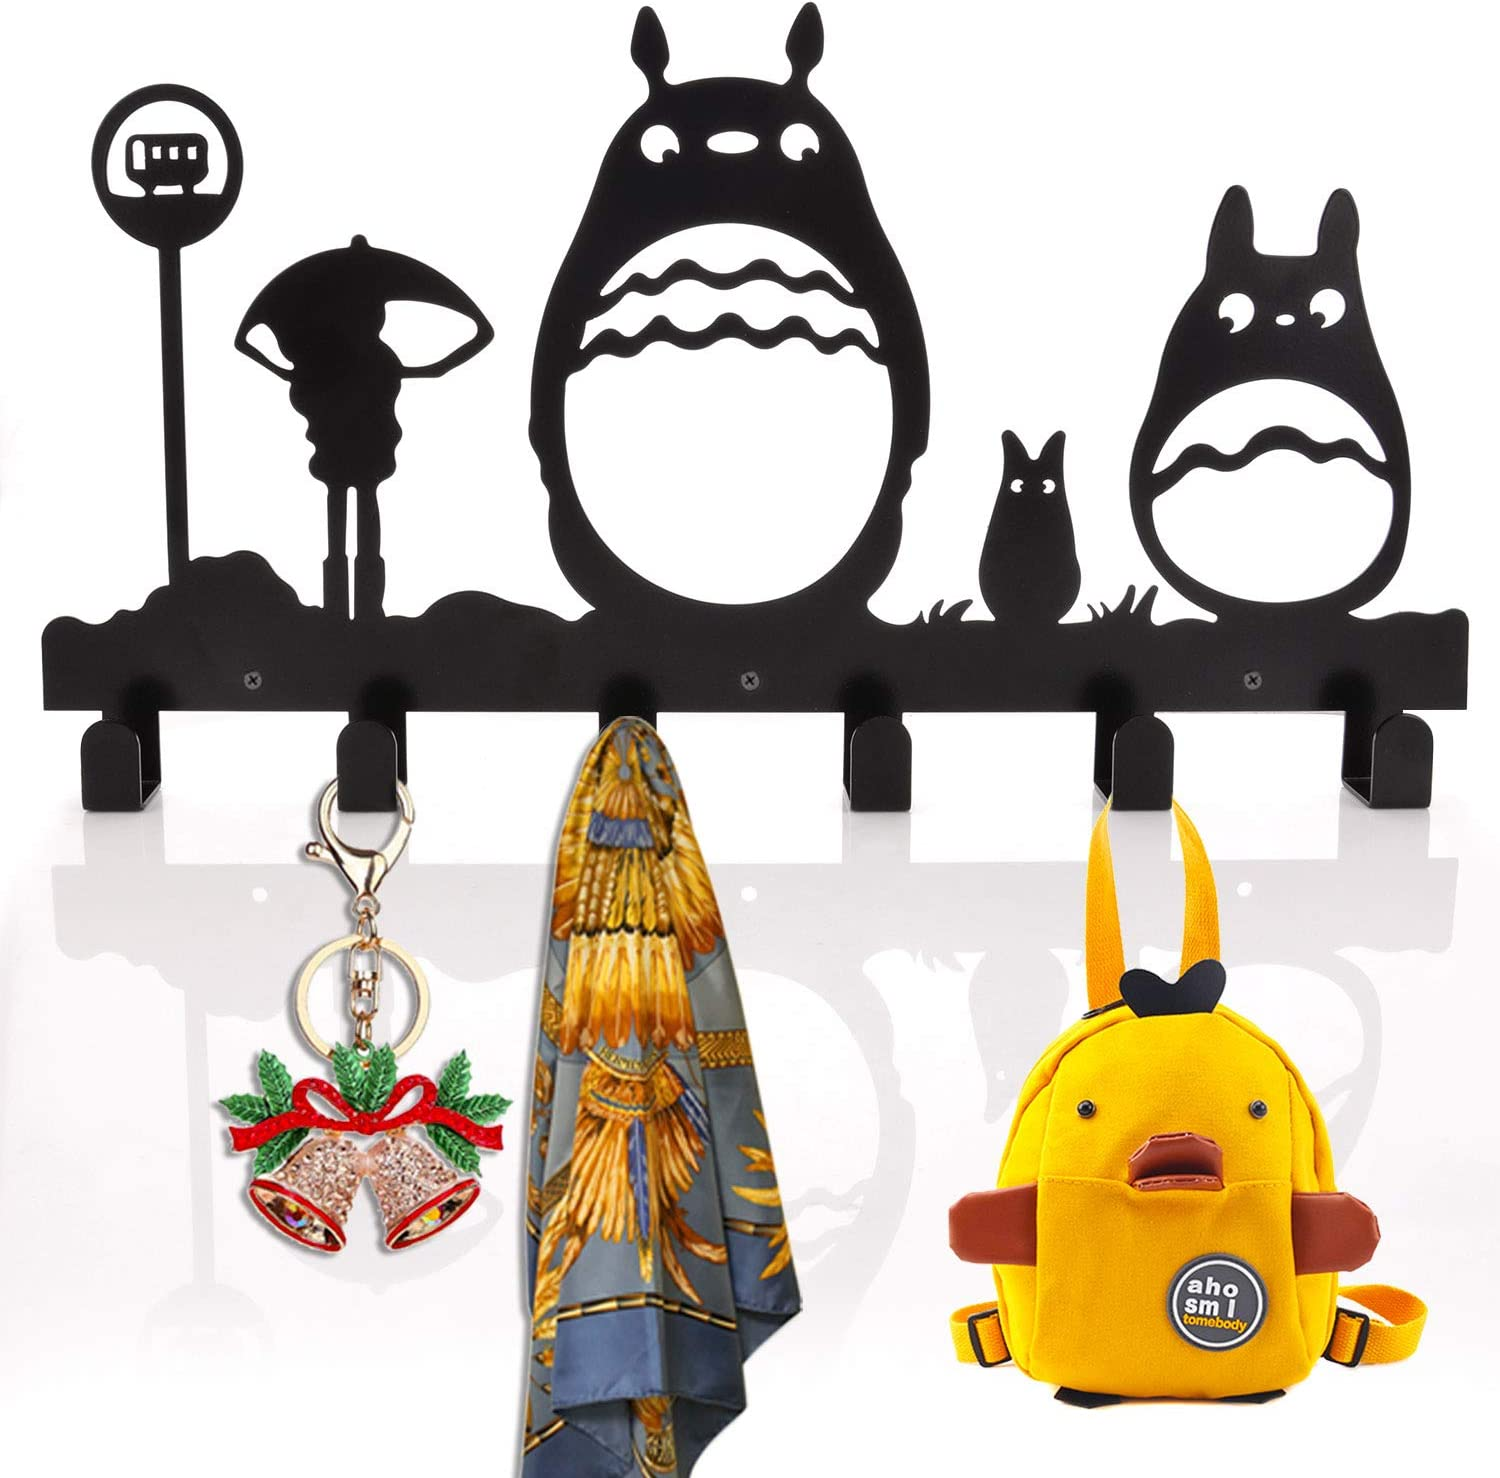 Kathy Coat Hooks Wall Mounted Entryway Dog Leash and Key Holder Hat and Belt Hanger Totoro Pattern Sweet Black Finish 6 Hooks